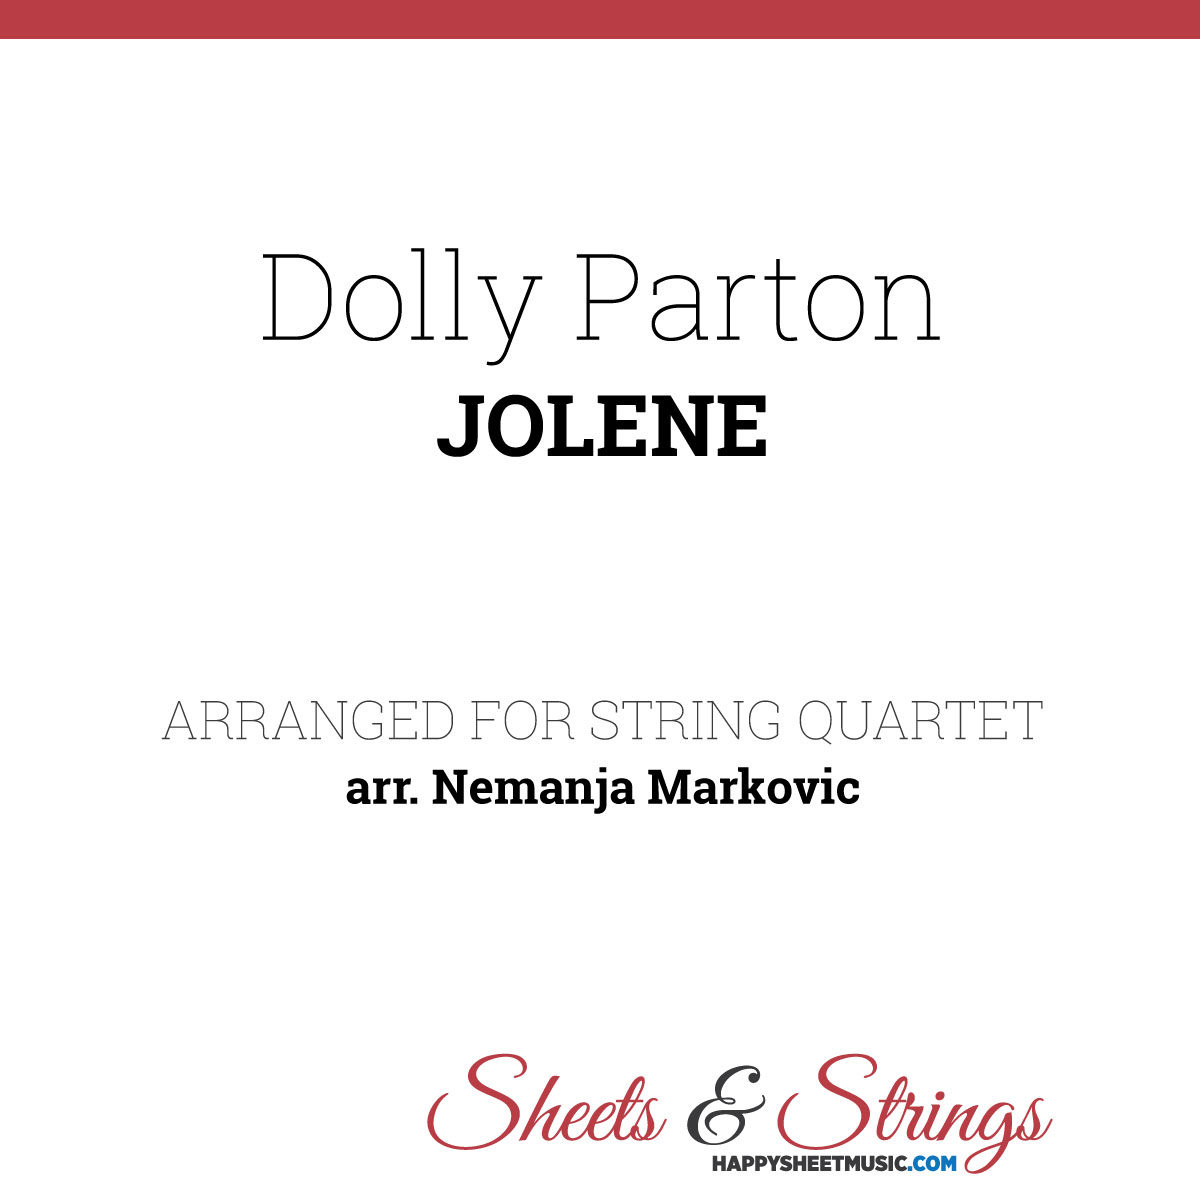 Dolly Parton - Jolene Sheet Music for String Quartet - Music Arrangements for String Quartet